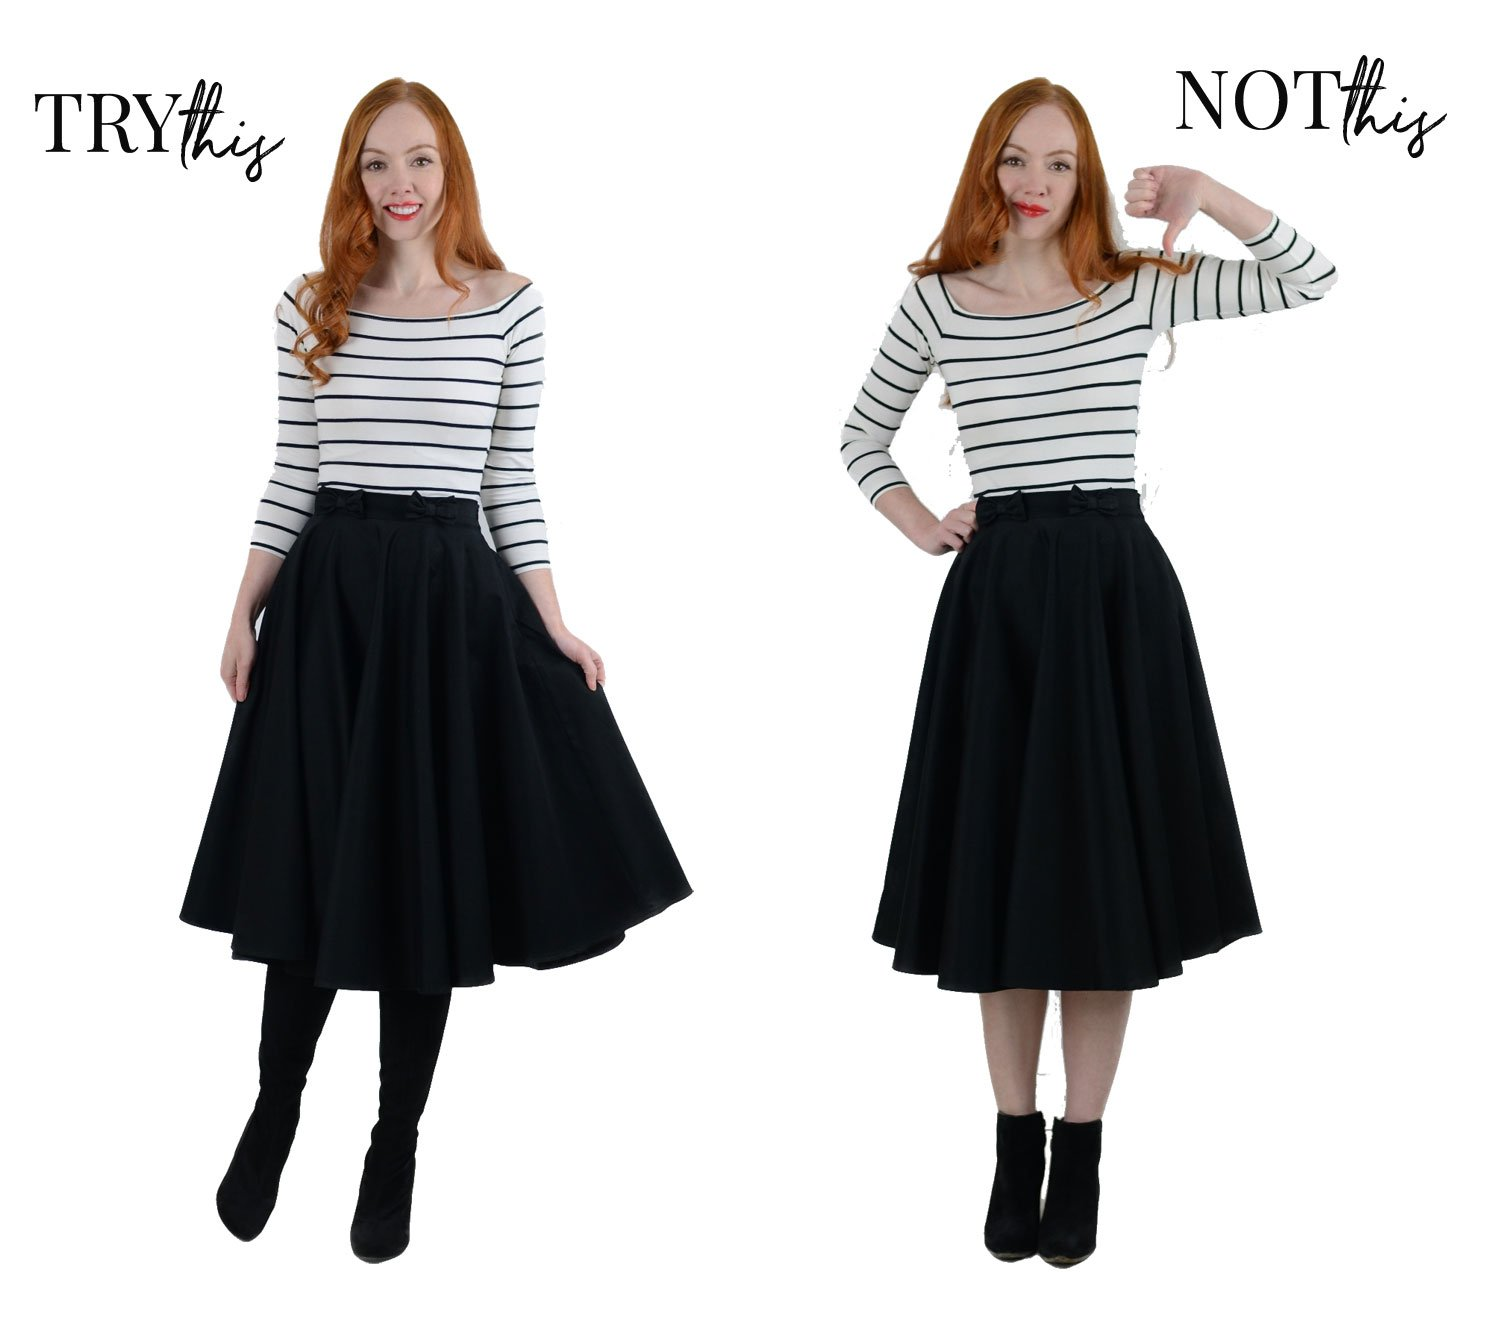 what kind of boots should you wear with a midi skirt